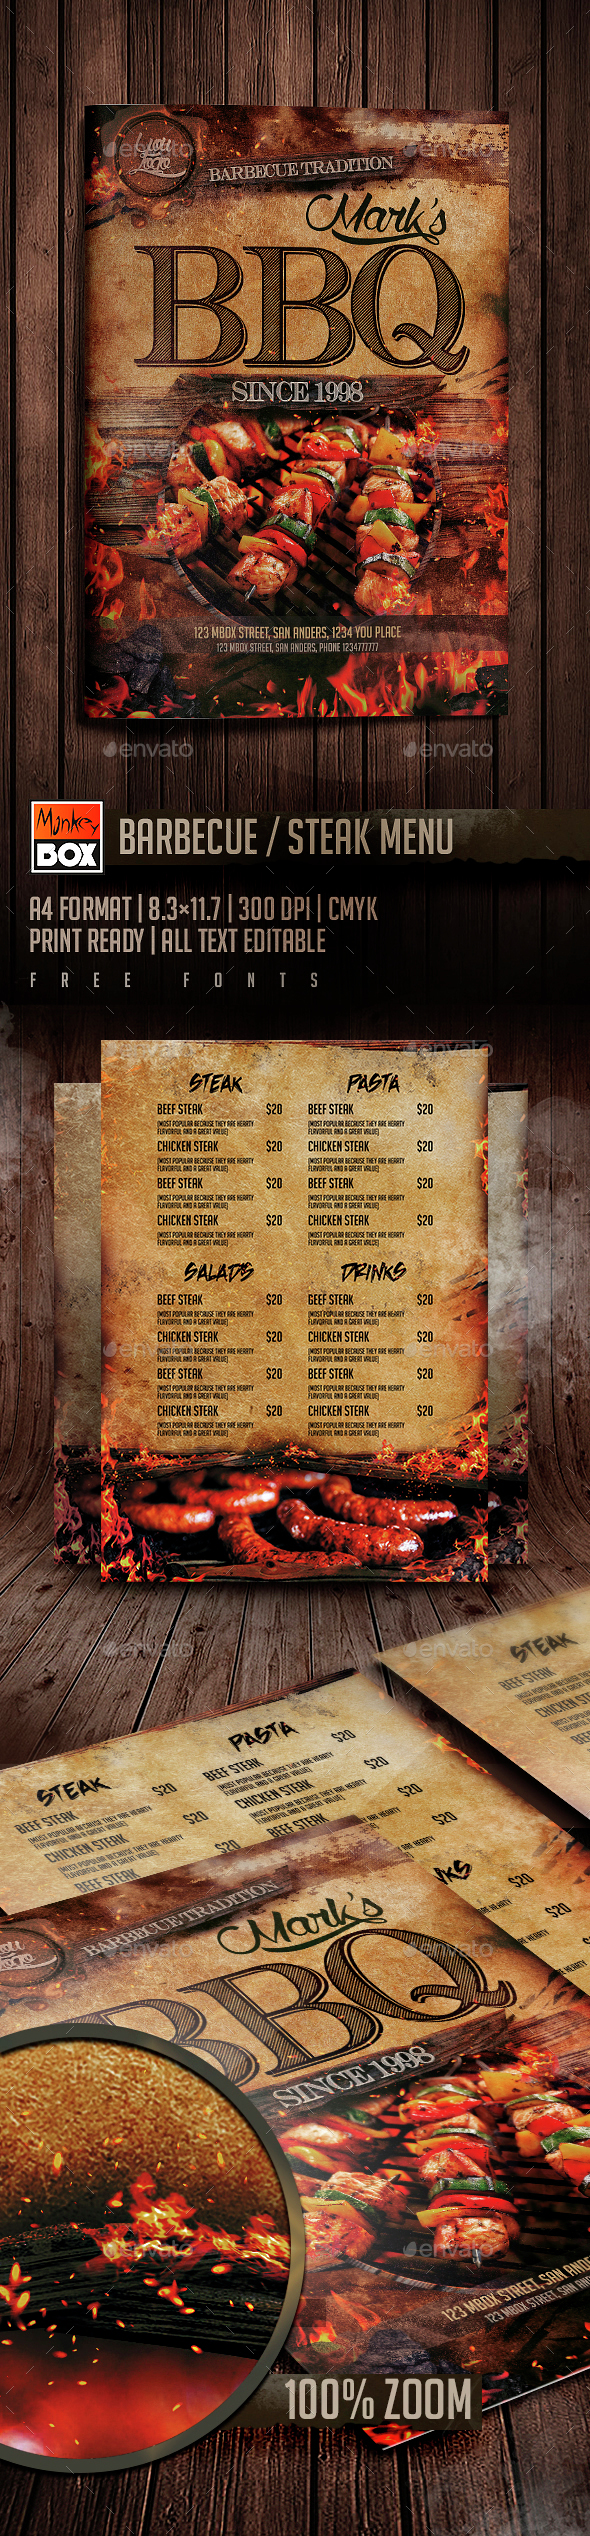 BBQ Steak Menu - Food Menus Print Templates